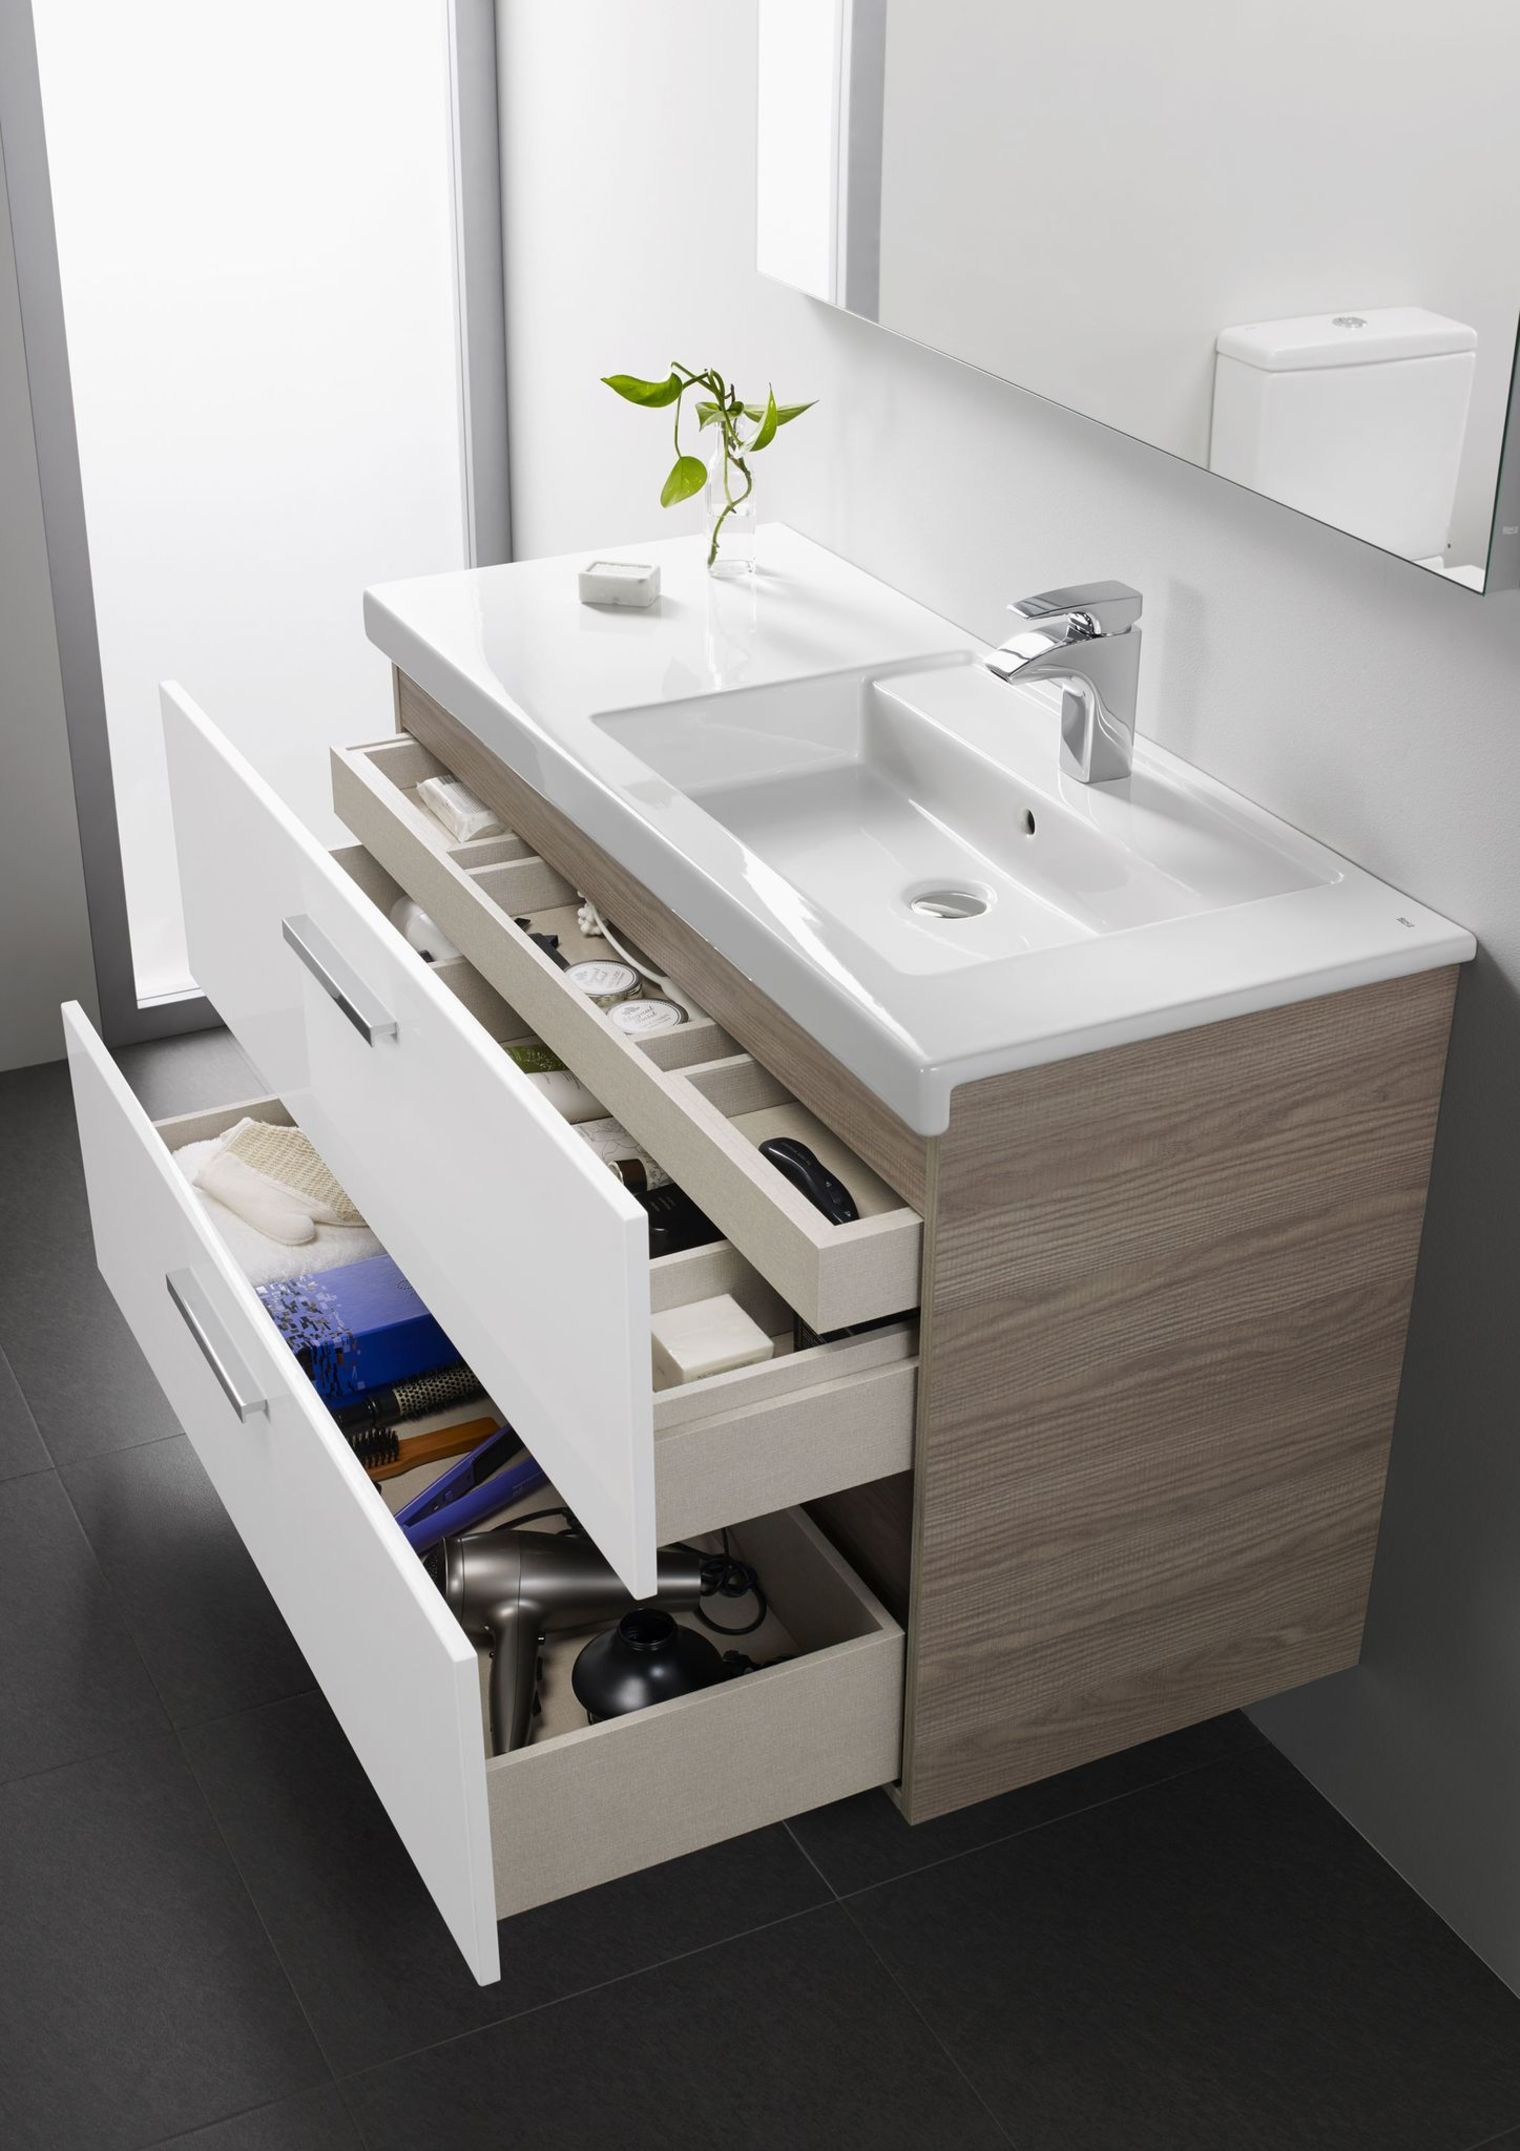 Meuble Salle Bain Bois Design Ikea Lapeyre Small Bathroom Vanities Modern Small Bathrooms Small Bathroom